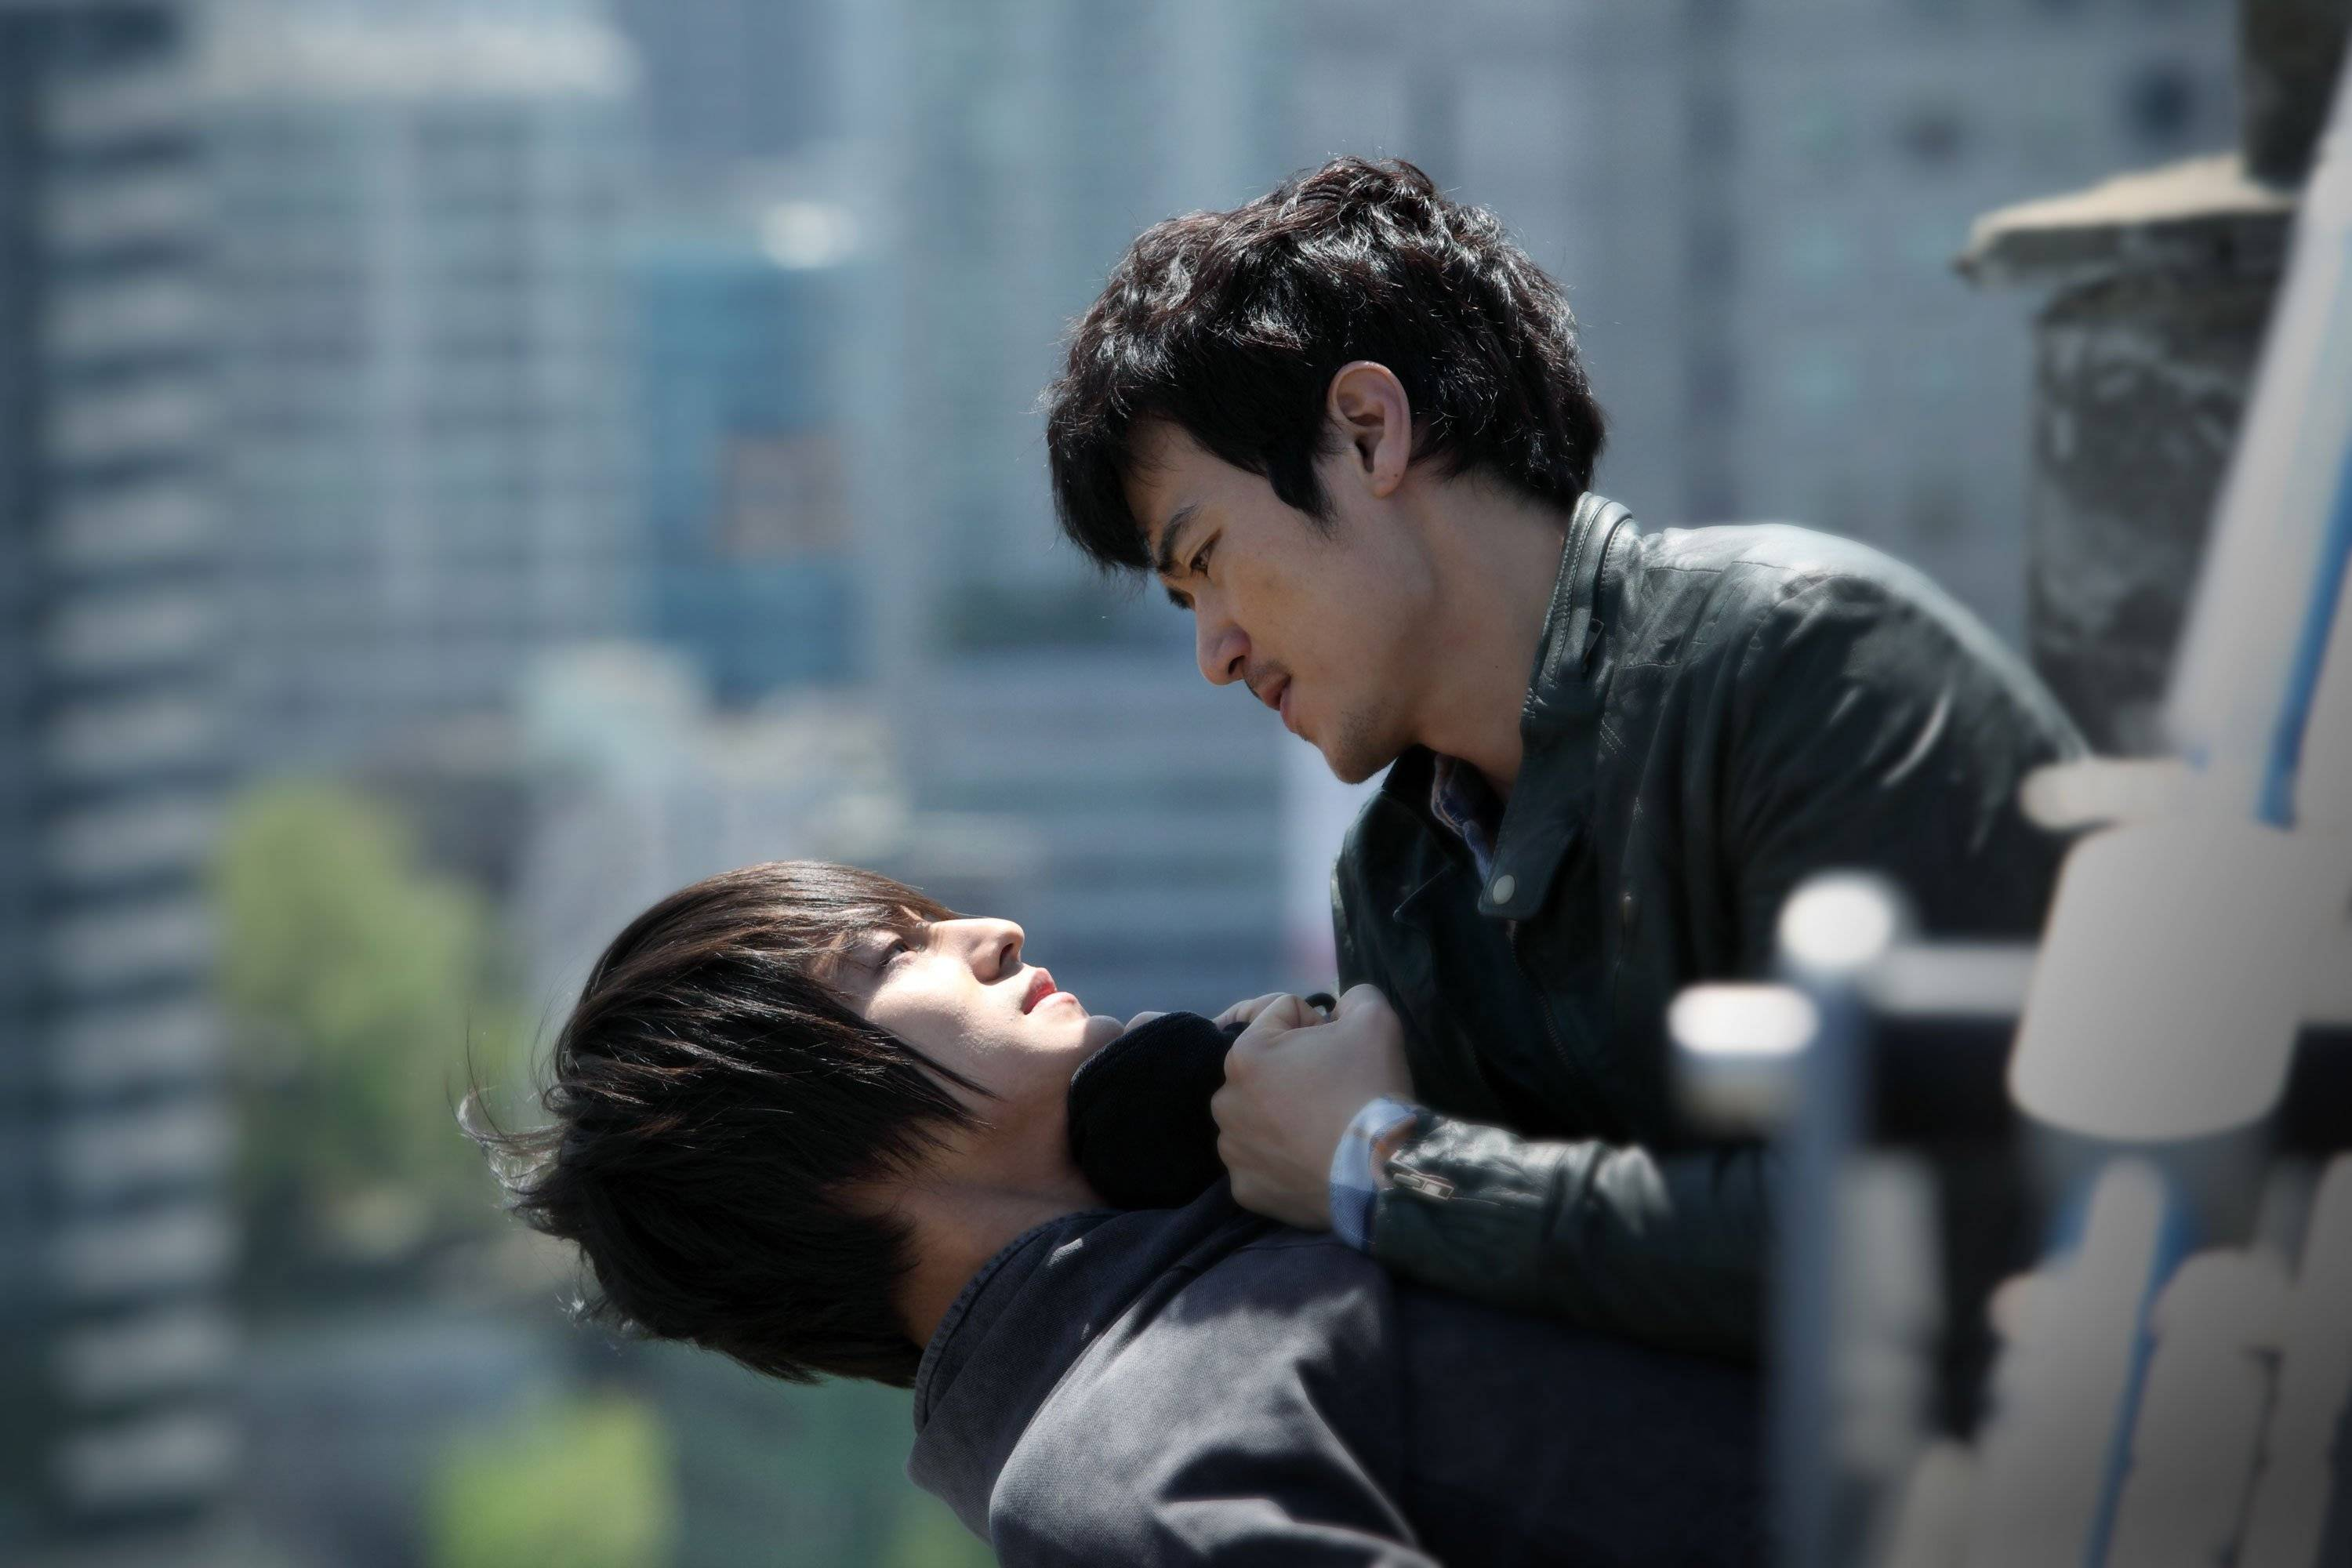 the gifted hands korean movie eng sub download